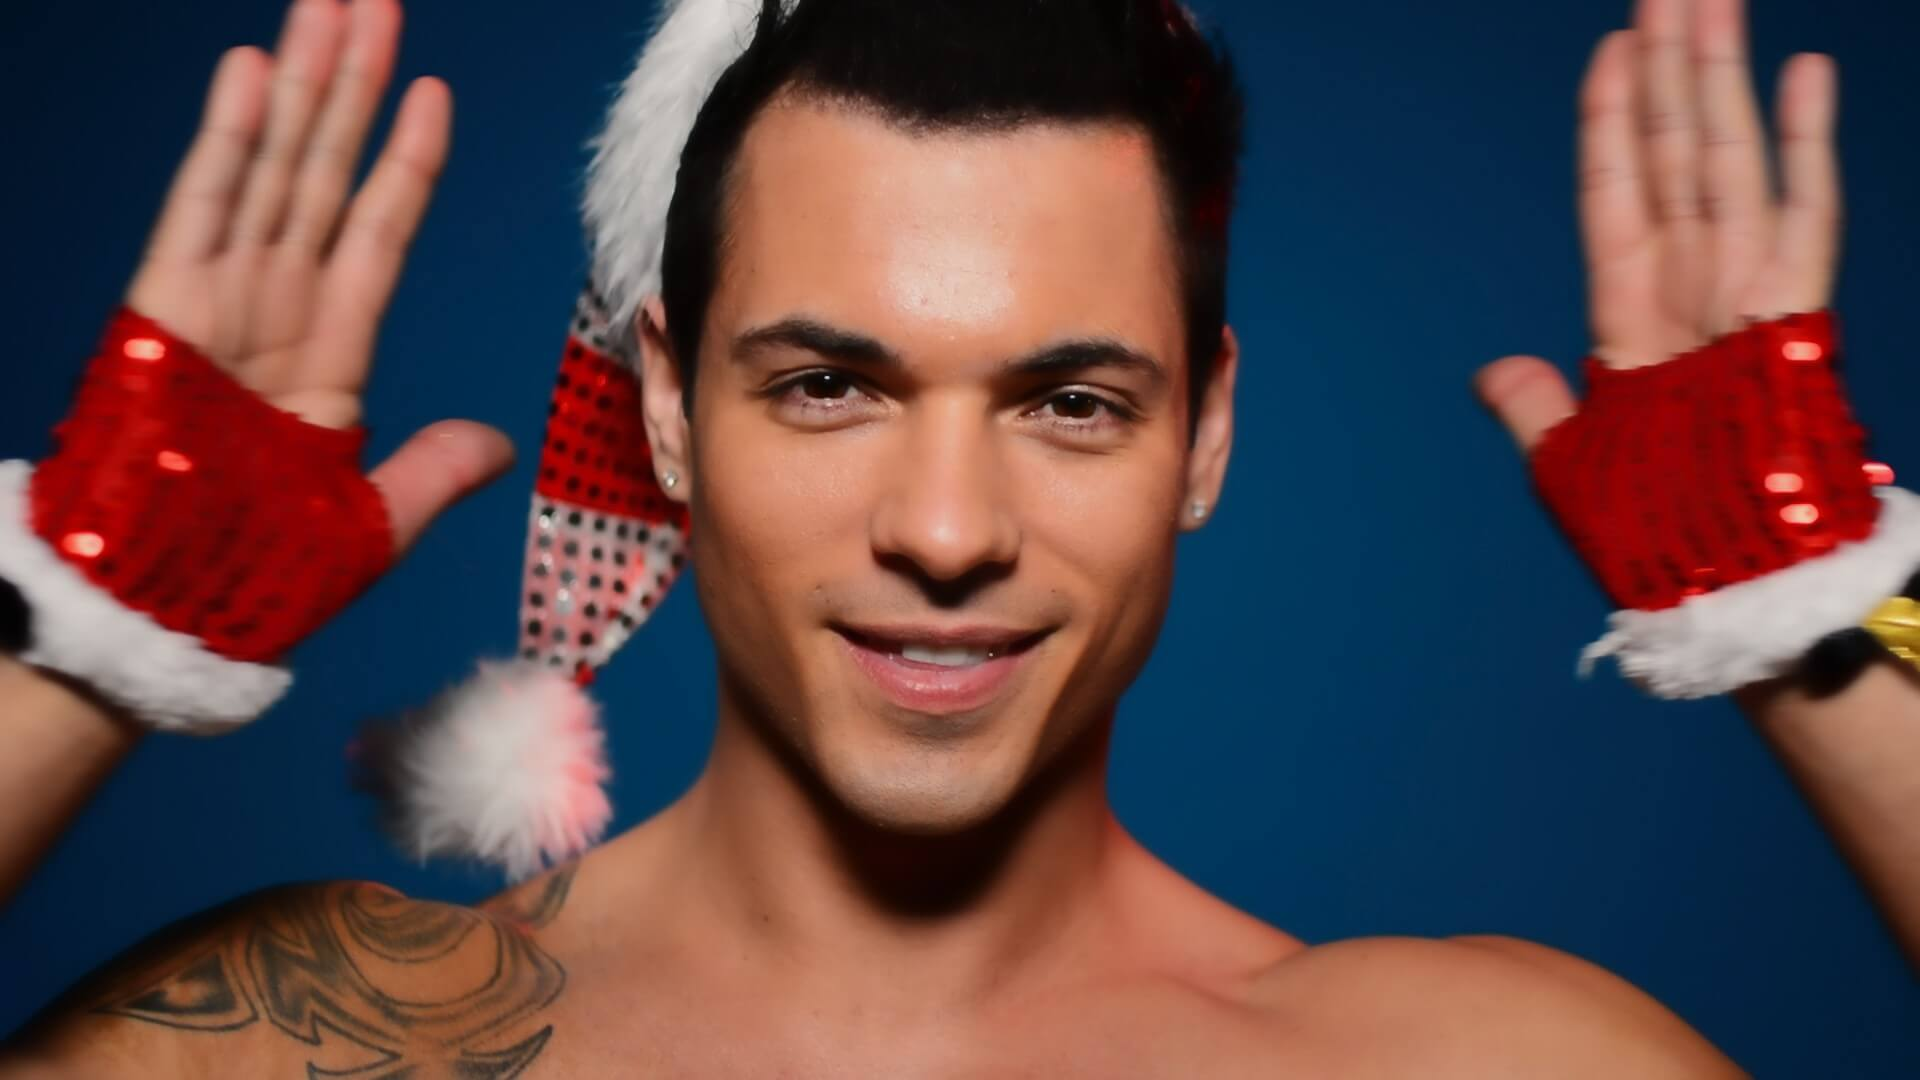 andrew_christian_christmas_holiday_rock